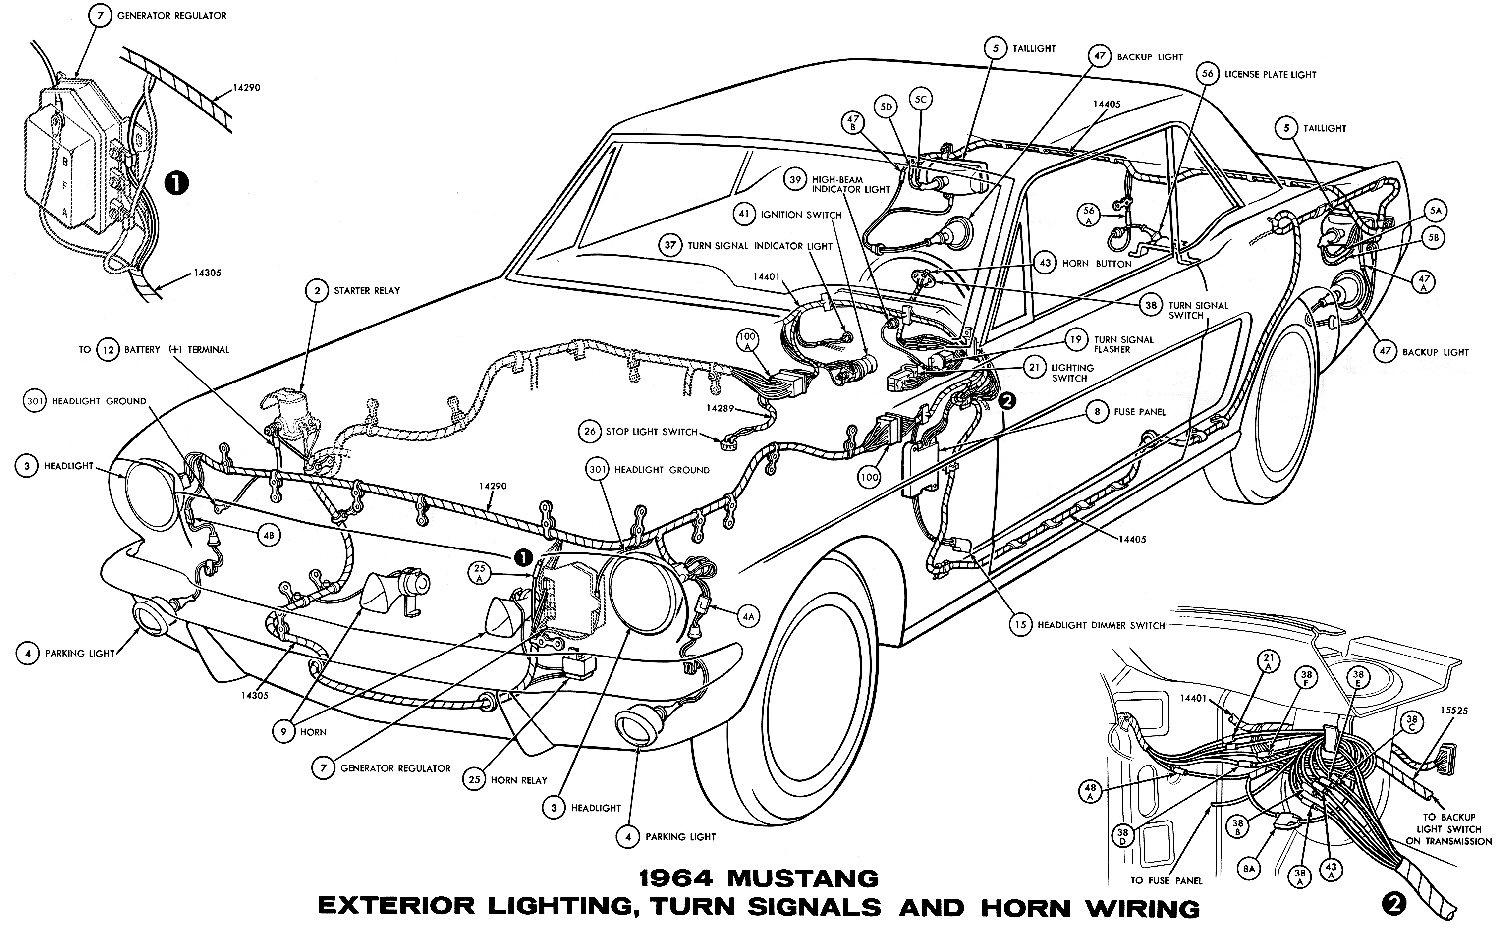 64 Ford F100 Headlight Wiring Library 68 Vw Beetle Flasher Diagram Free Download 1964 Mustang Exterior Lighting Turn Signals And Horns Pictorial Or Schematic Diagrams